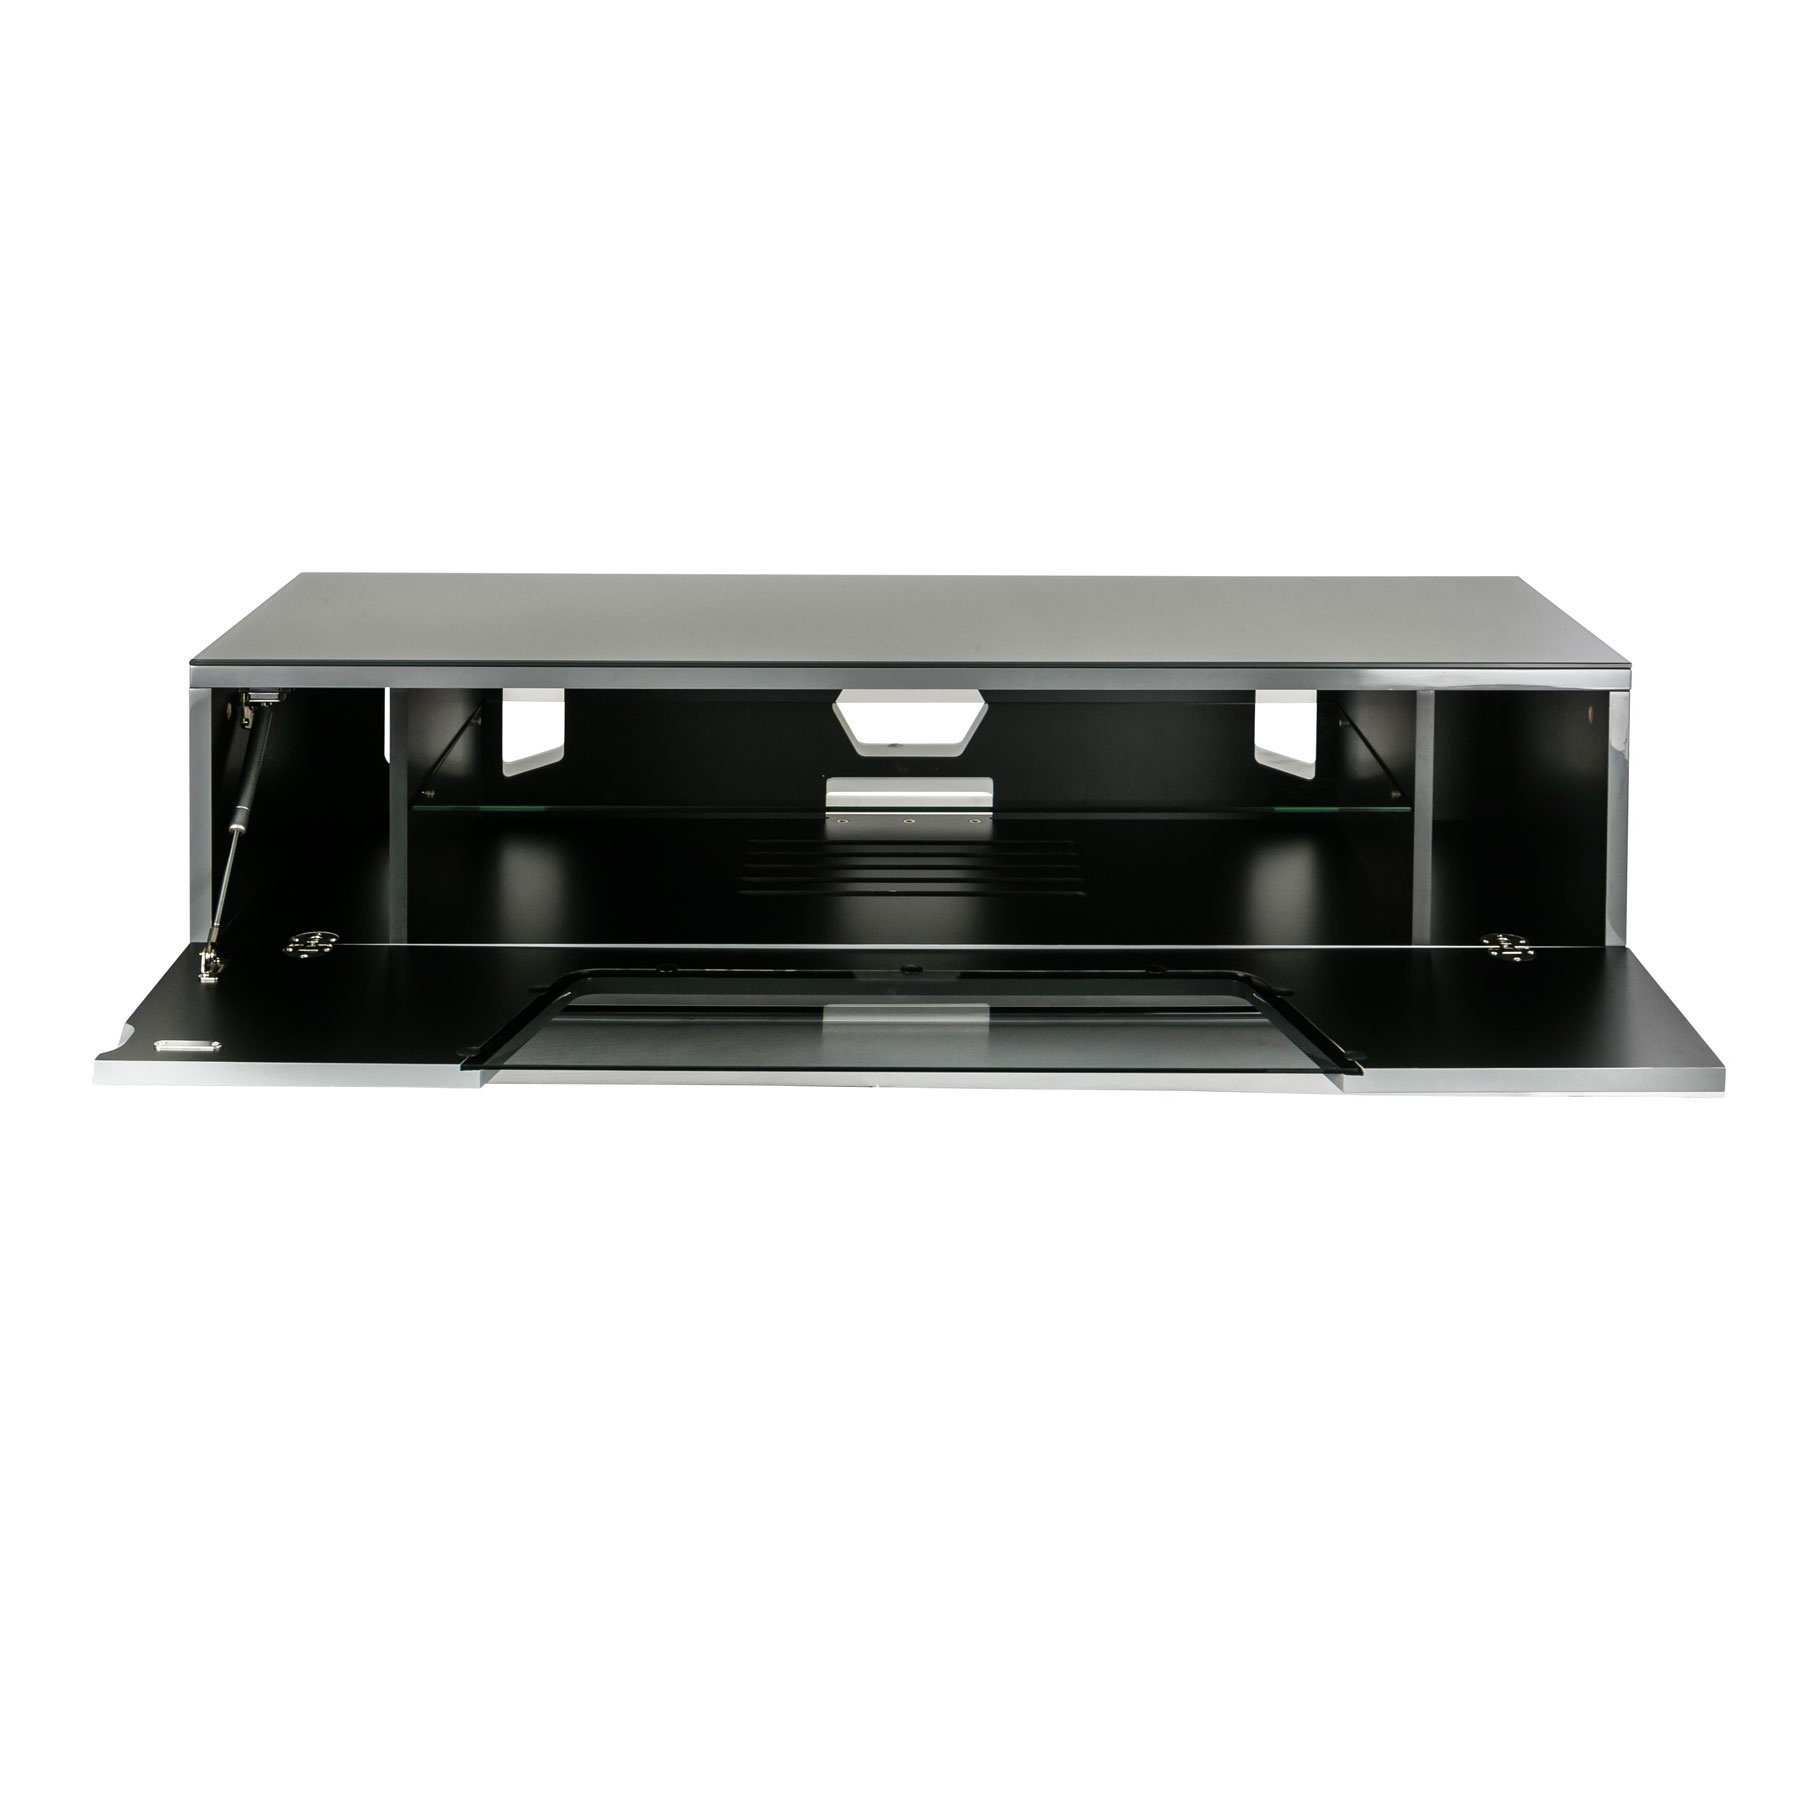 """Alphason Chromium 2 120cm Grey Tv Stand For Up To 60"""" Tvs For Chromium Tv Stands (View 5 of 20)"""